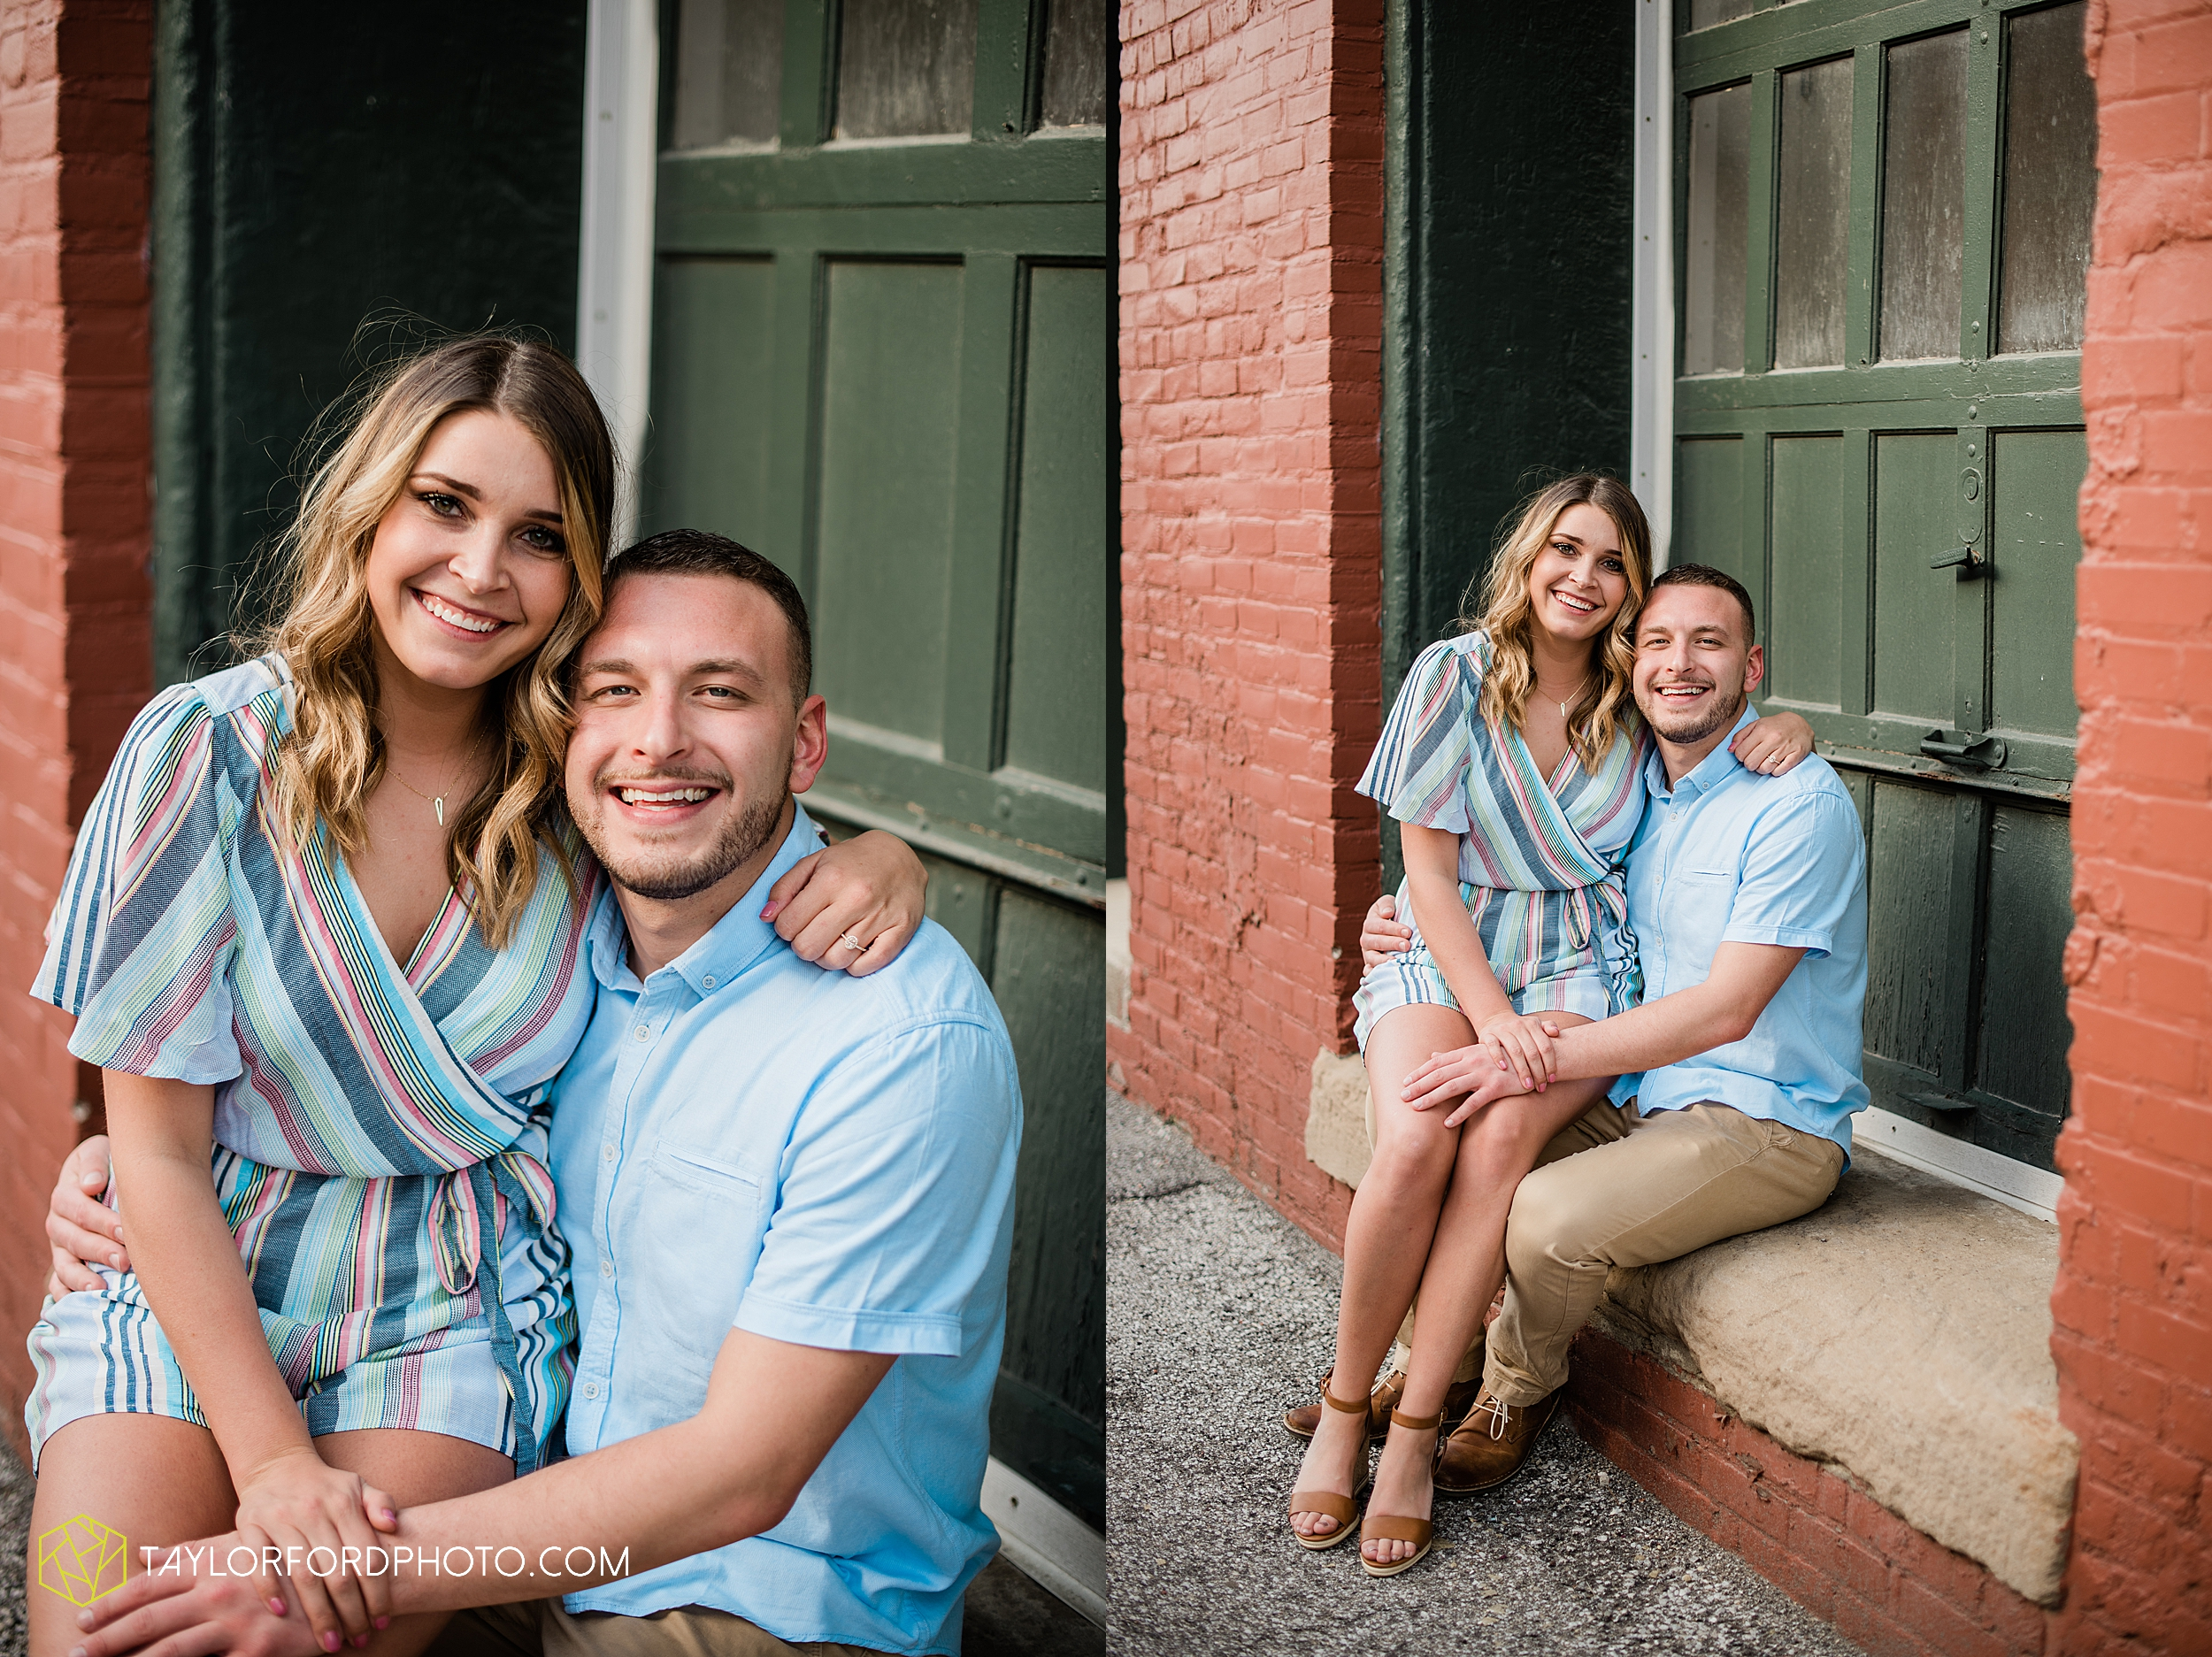 aly-taylor-downtown-fort-wayne-indiana-spring-engagement-photographer-photography-taylor-ford-hirschy-photographer_2582.jpg